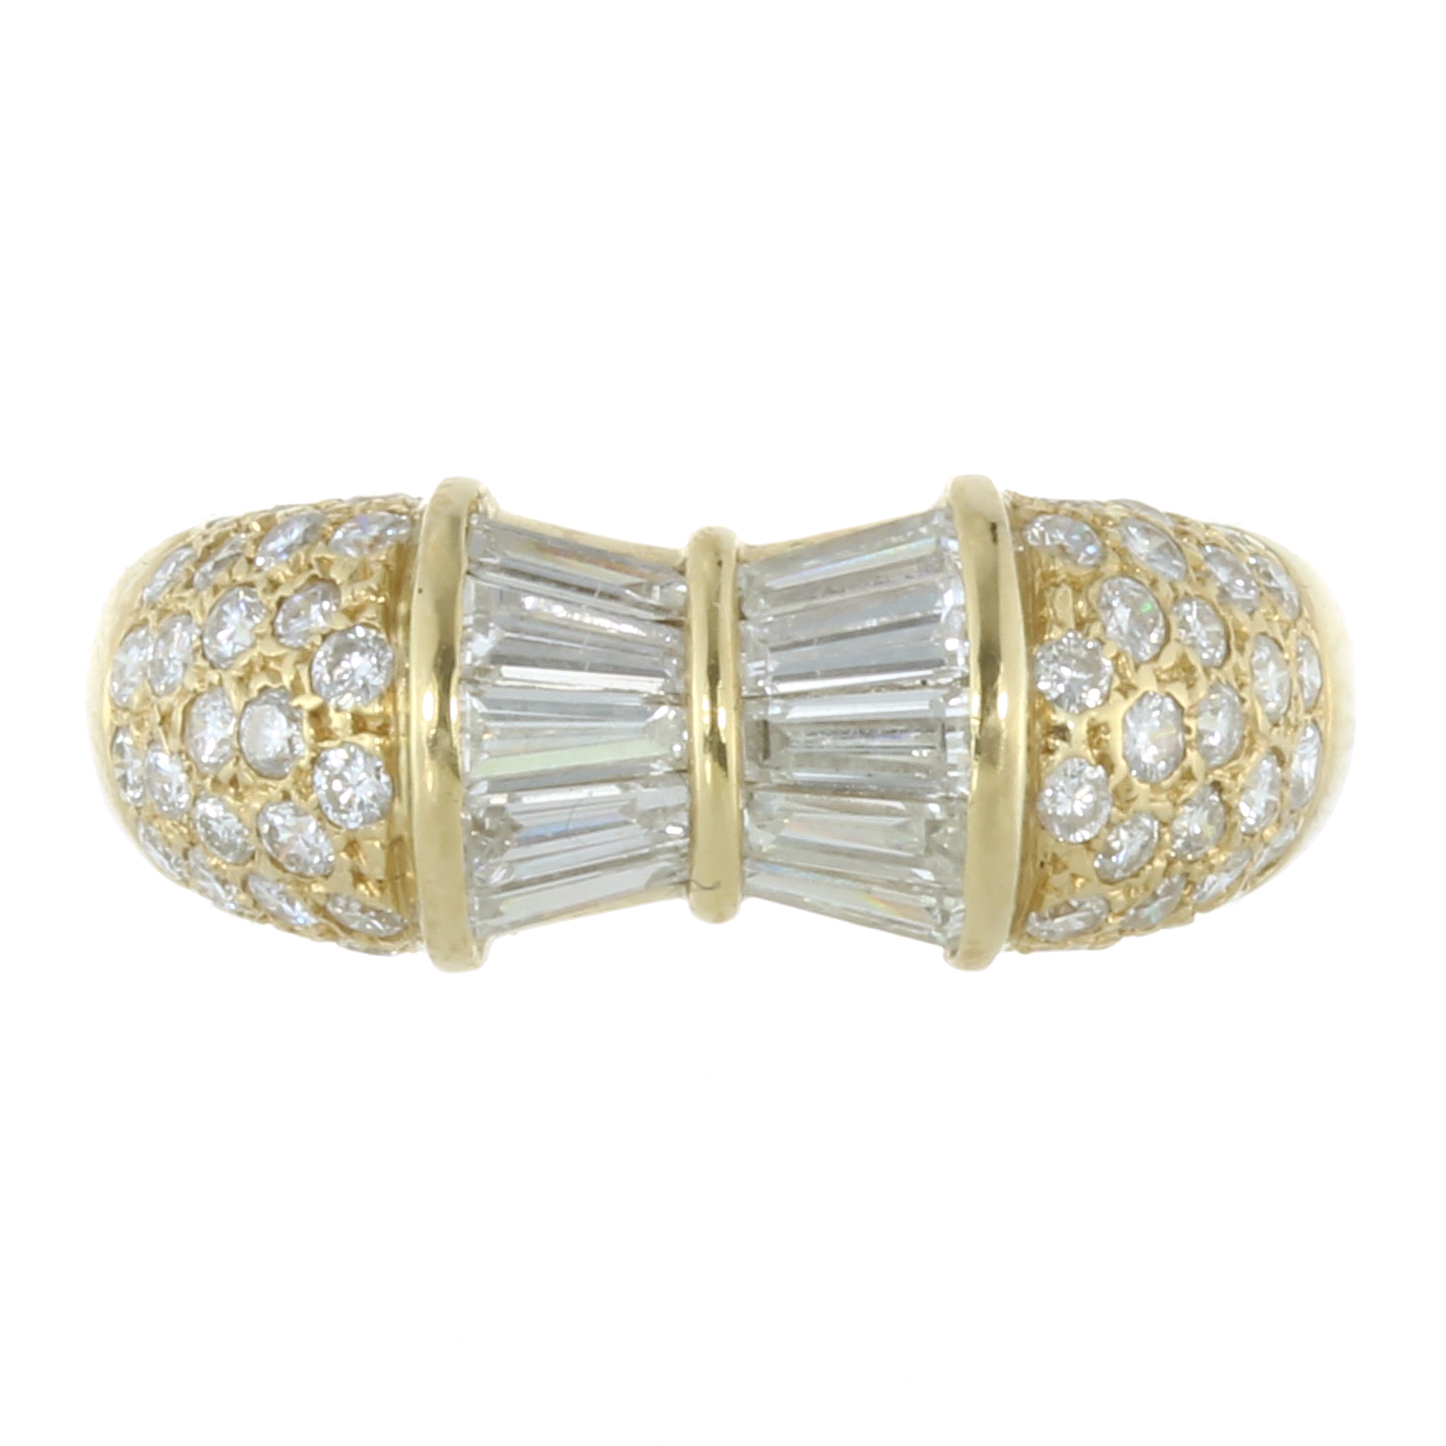 Los 58 - A DIAMOND DRESS RING in 18ct yellow gold, the bow-style central motif jewelled with calibre cut